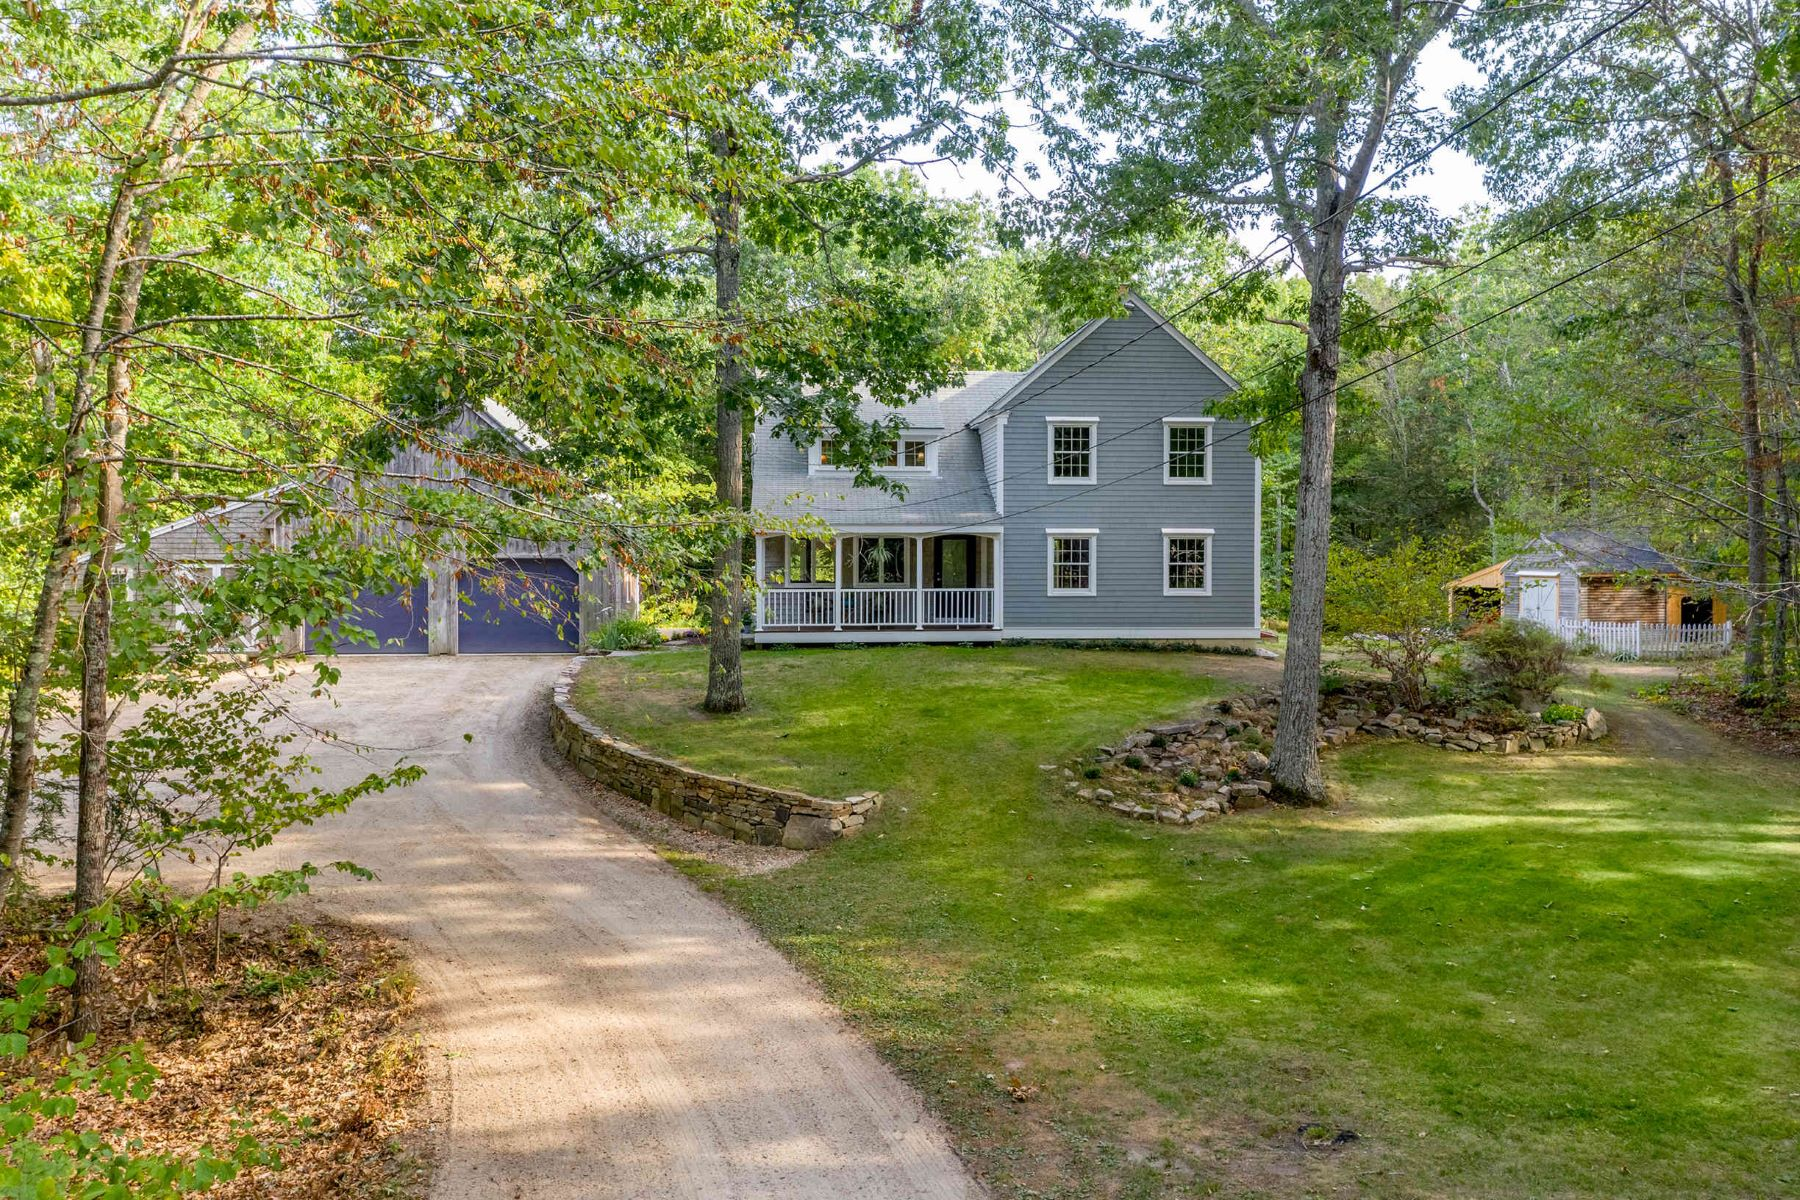 Single Family Homes for Active at Charming New Englander in Private Neighborhood 11 Ladyslipper Lane Eliot, Maine 03903 United States